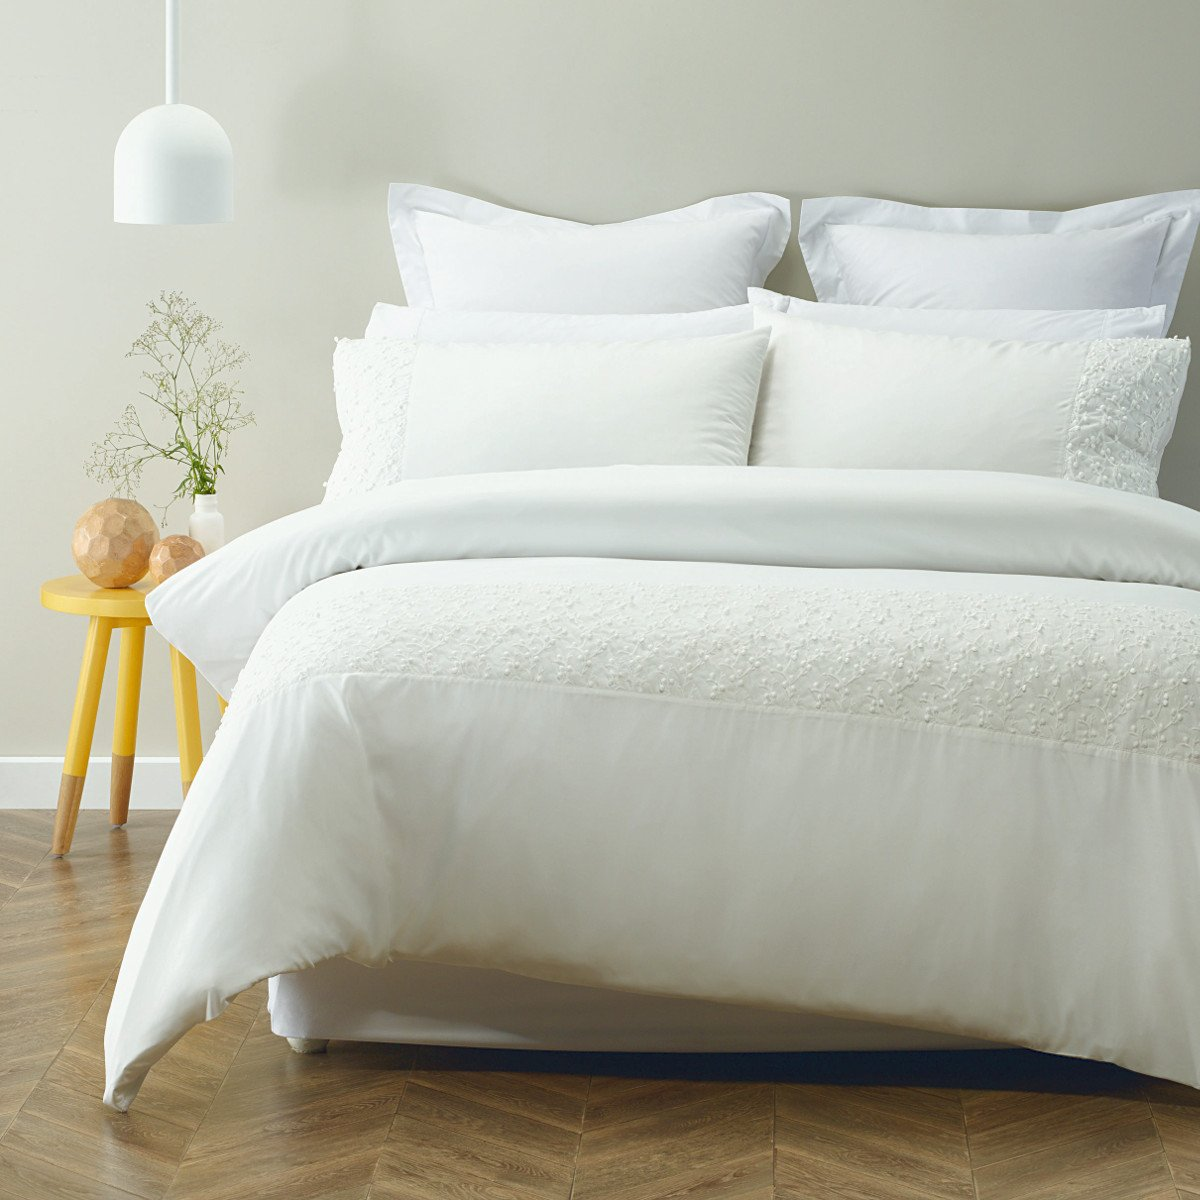 Appliqued soft feel polyester duvet cover set. Ivory quilt cover set.